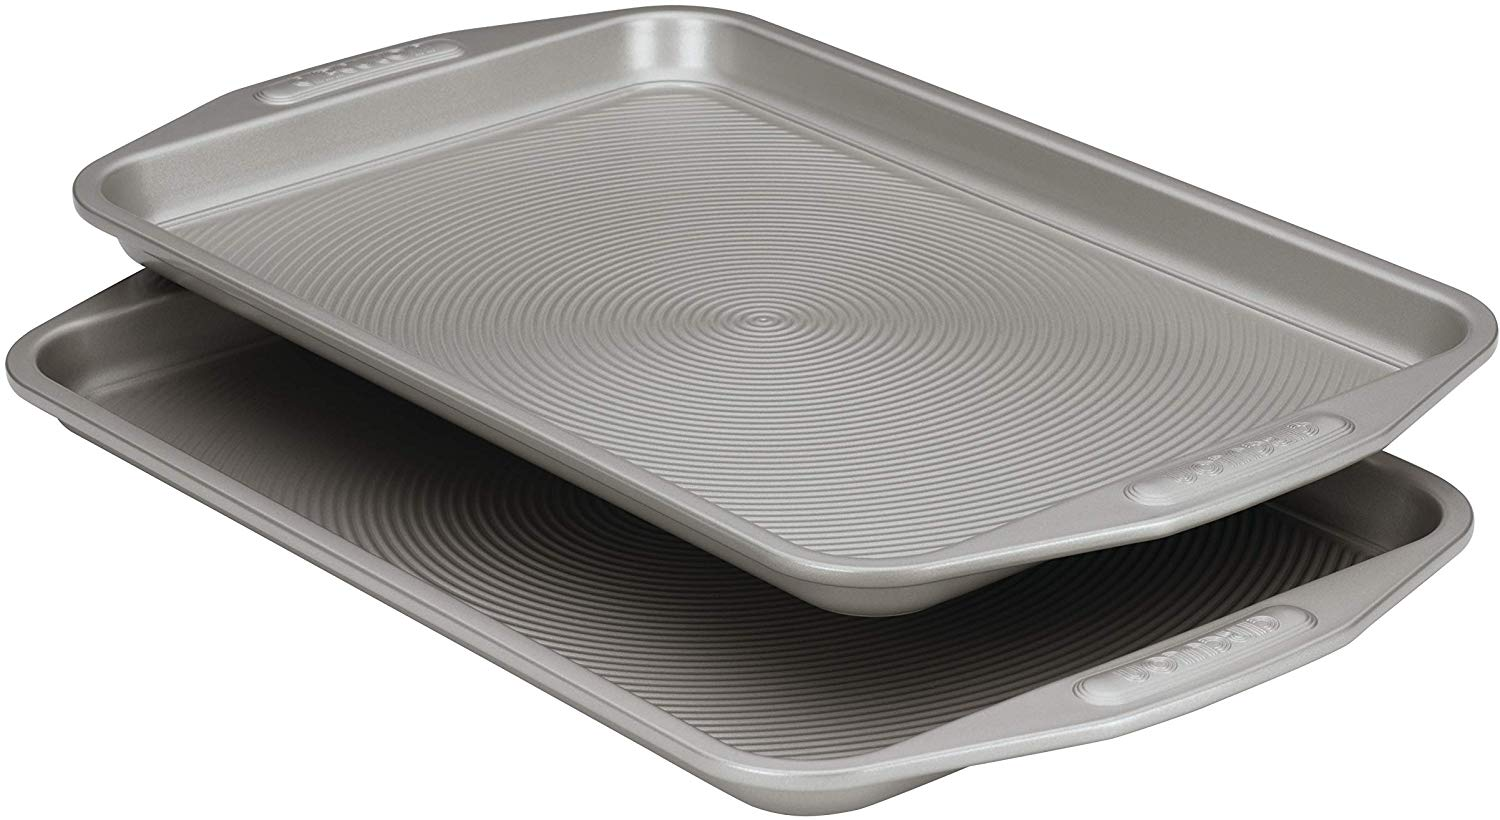 Circulon 57893 Total Bakeware Nonstick Cookie Baking Sheet, 2-Piece